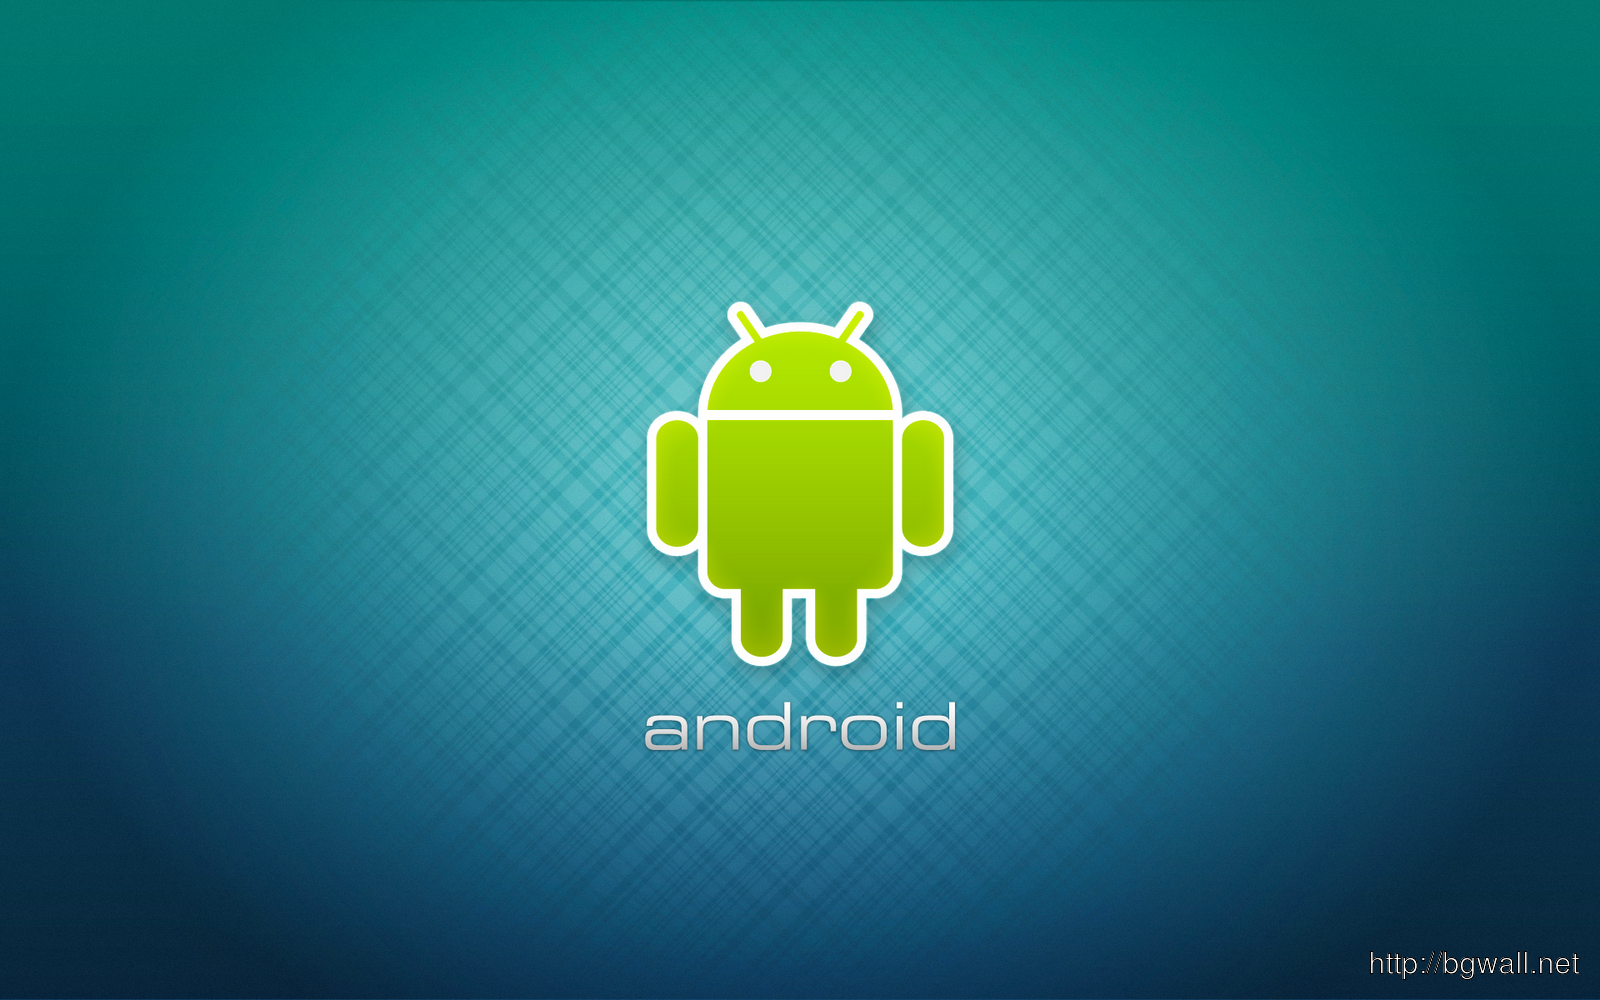 Android-PC-Desktop-Wallpaper